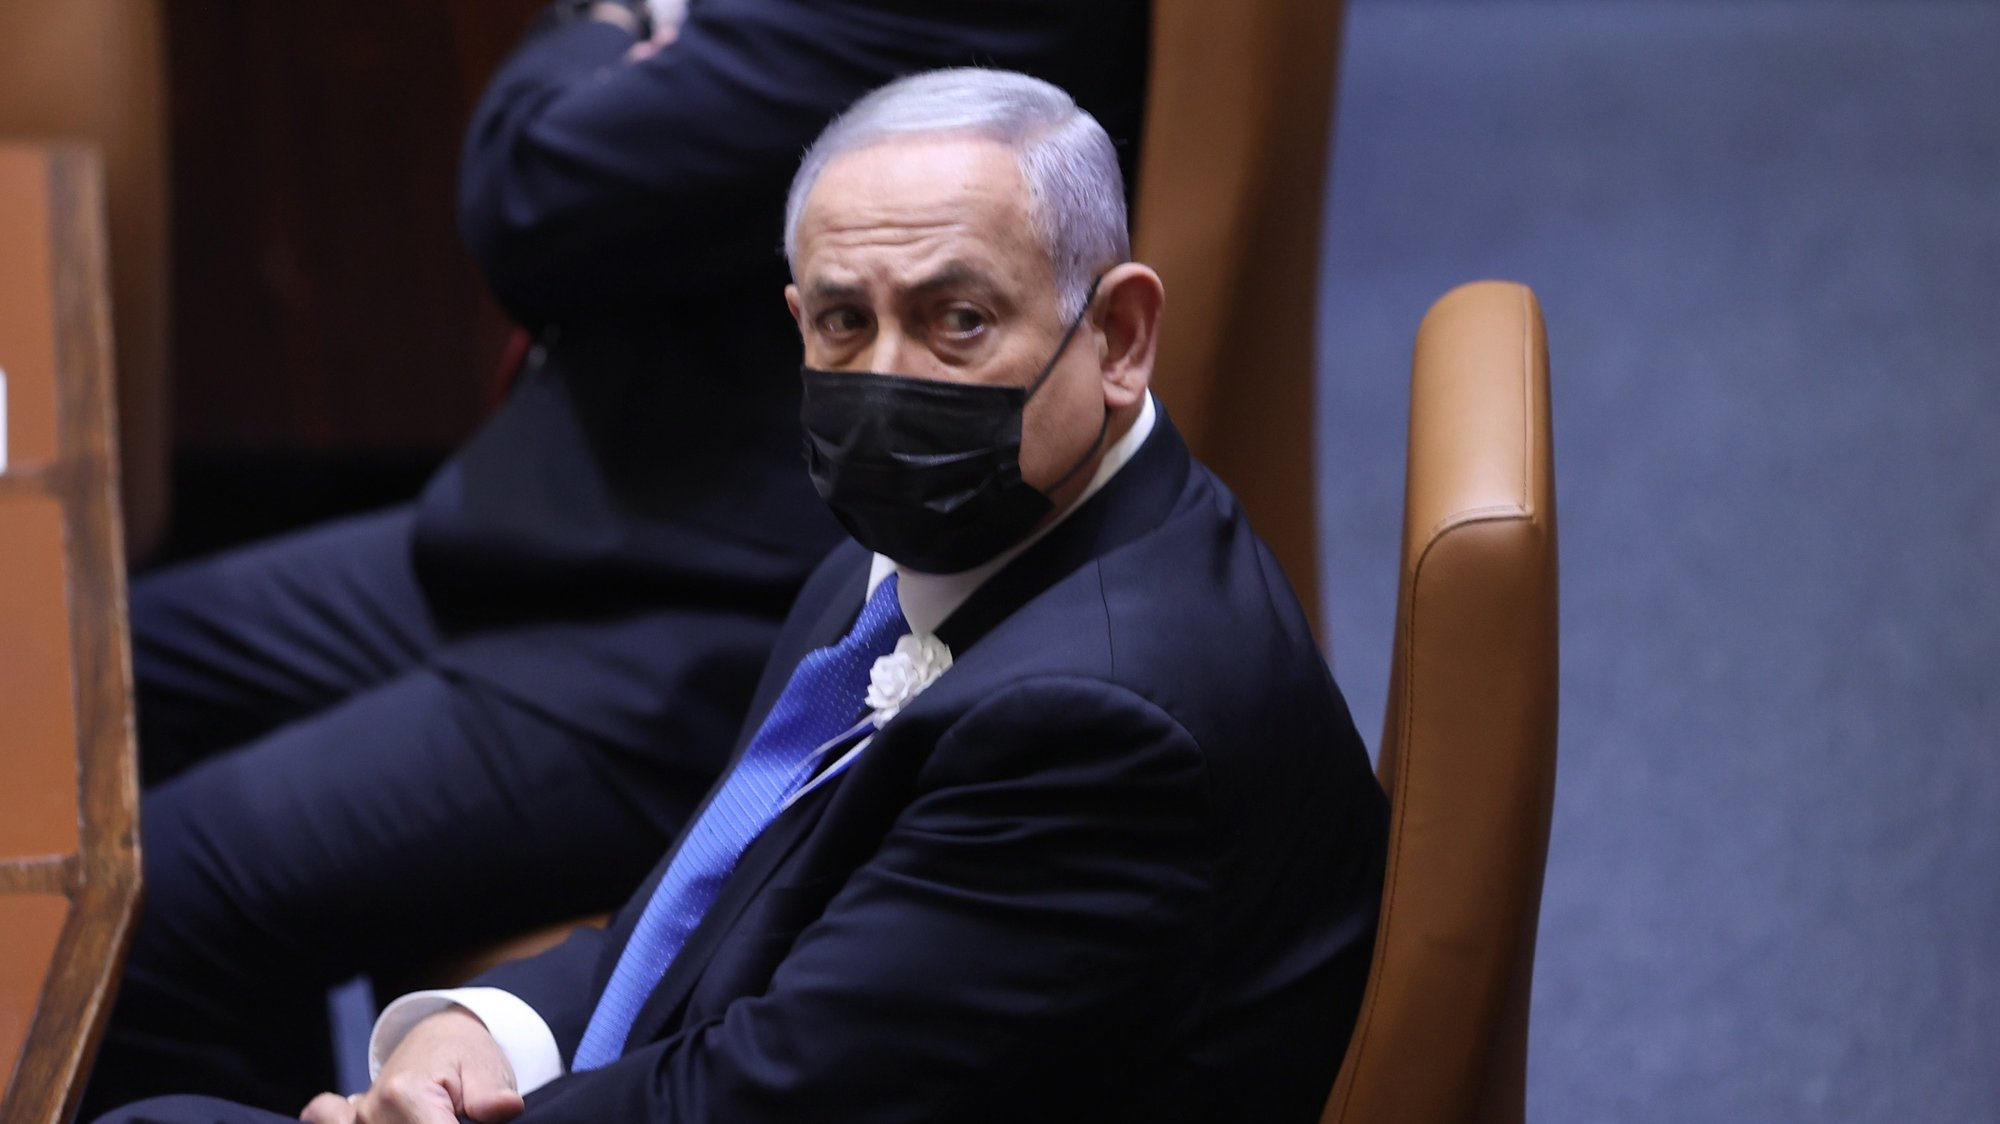 epa09118693 Israeli Prime Minister Benjamin Netanyahu attends the swearing in ceremony of the Israeli 24th Israeli Knesset (parliament) in Jerusalem, Israel, 06 April 2021. Israeli President Reuven Rivlin announced earlier that as a result of his consultations no candidate has a realistic chance of forming a government, but nominated Prime Minister and leader of Likud MK Benjamin Netanyahu with forming a government.  EPA/Alex Kolomoisky / POOL